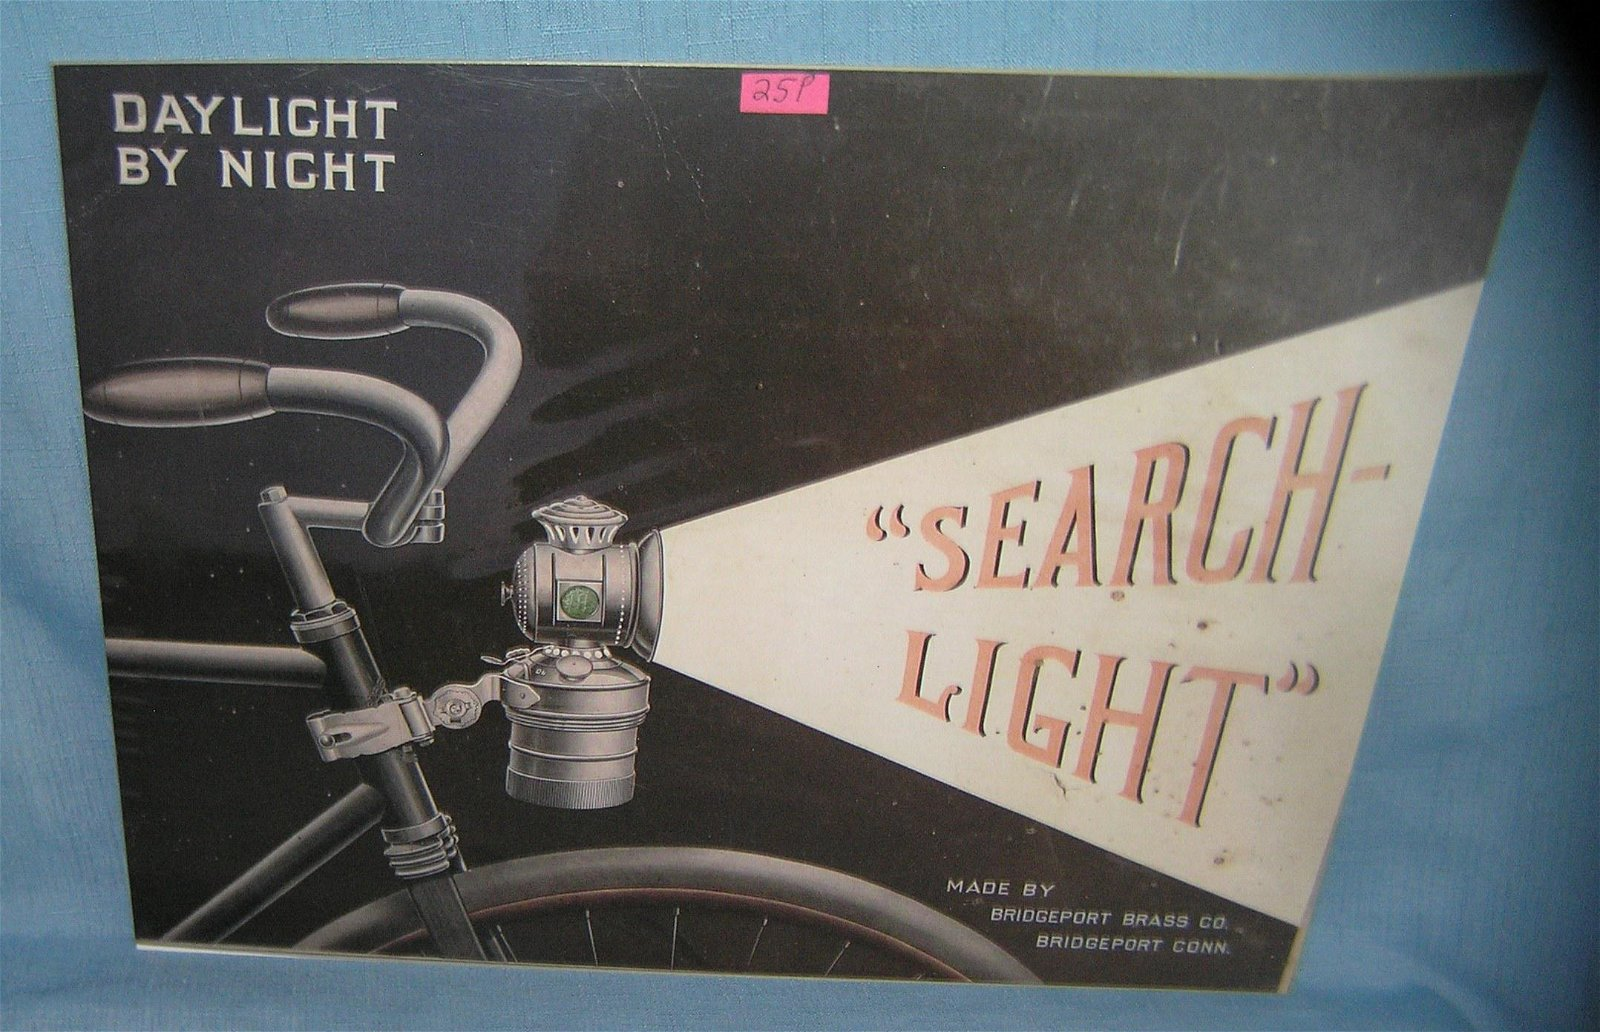 Bicycle search light retro advertising sign